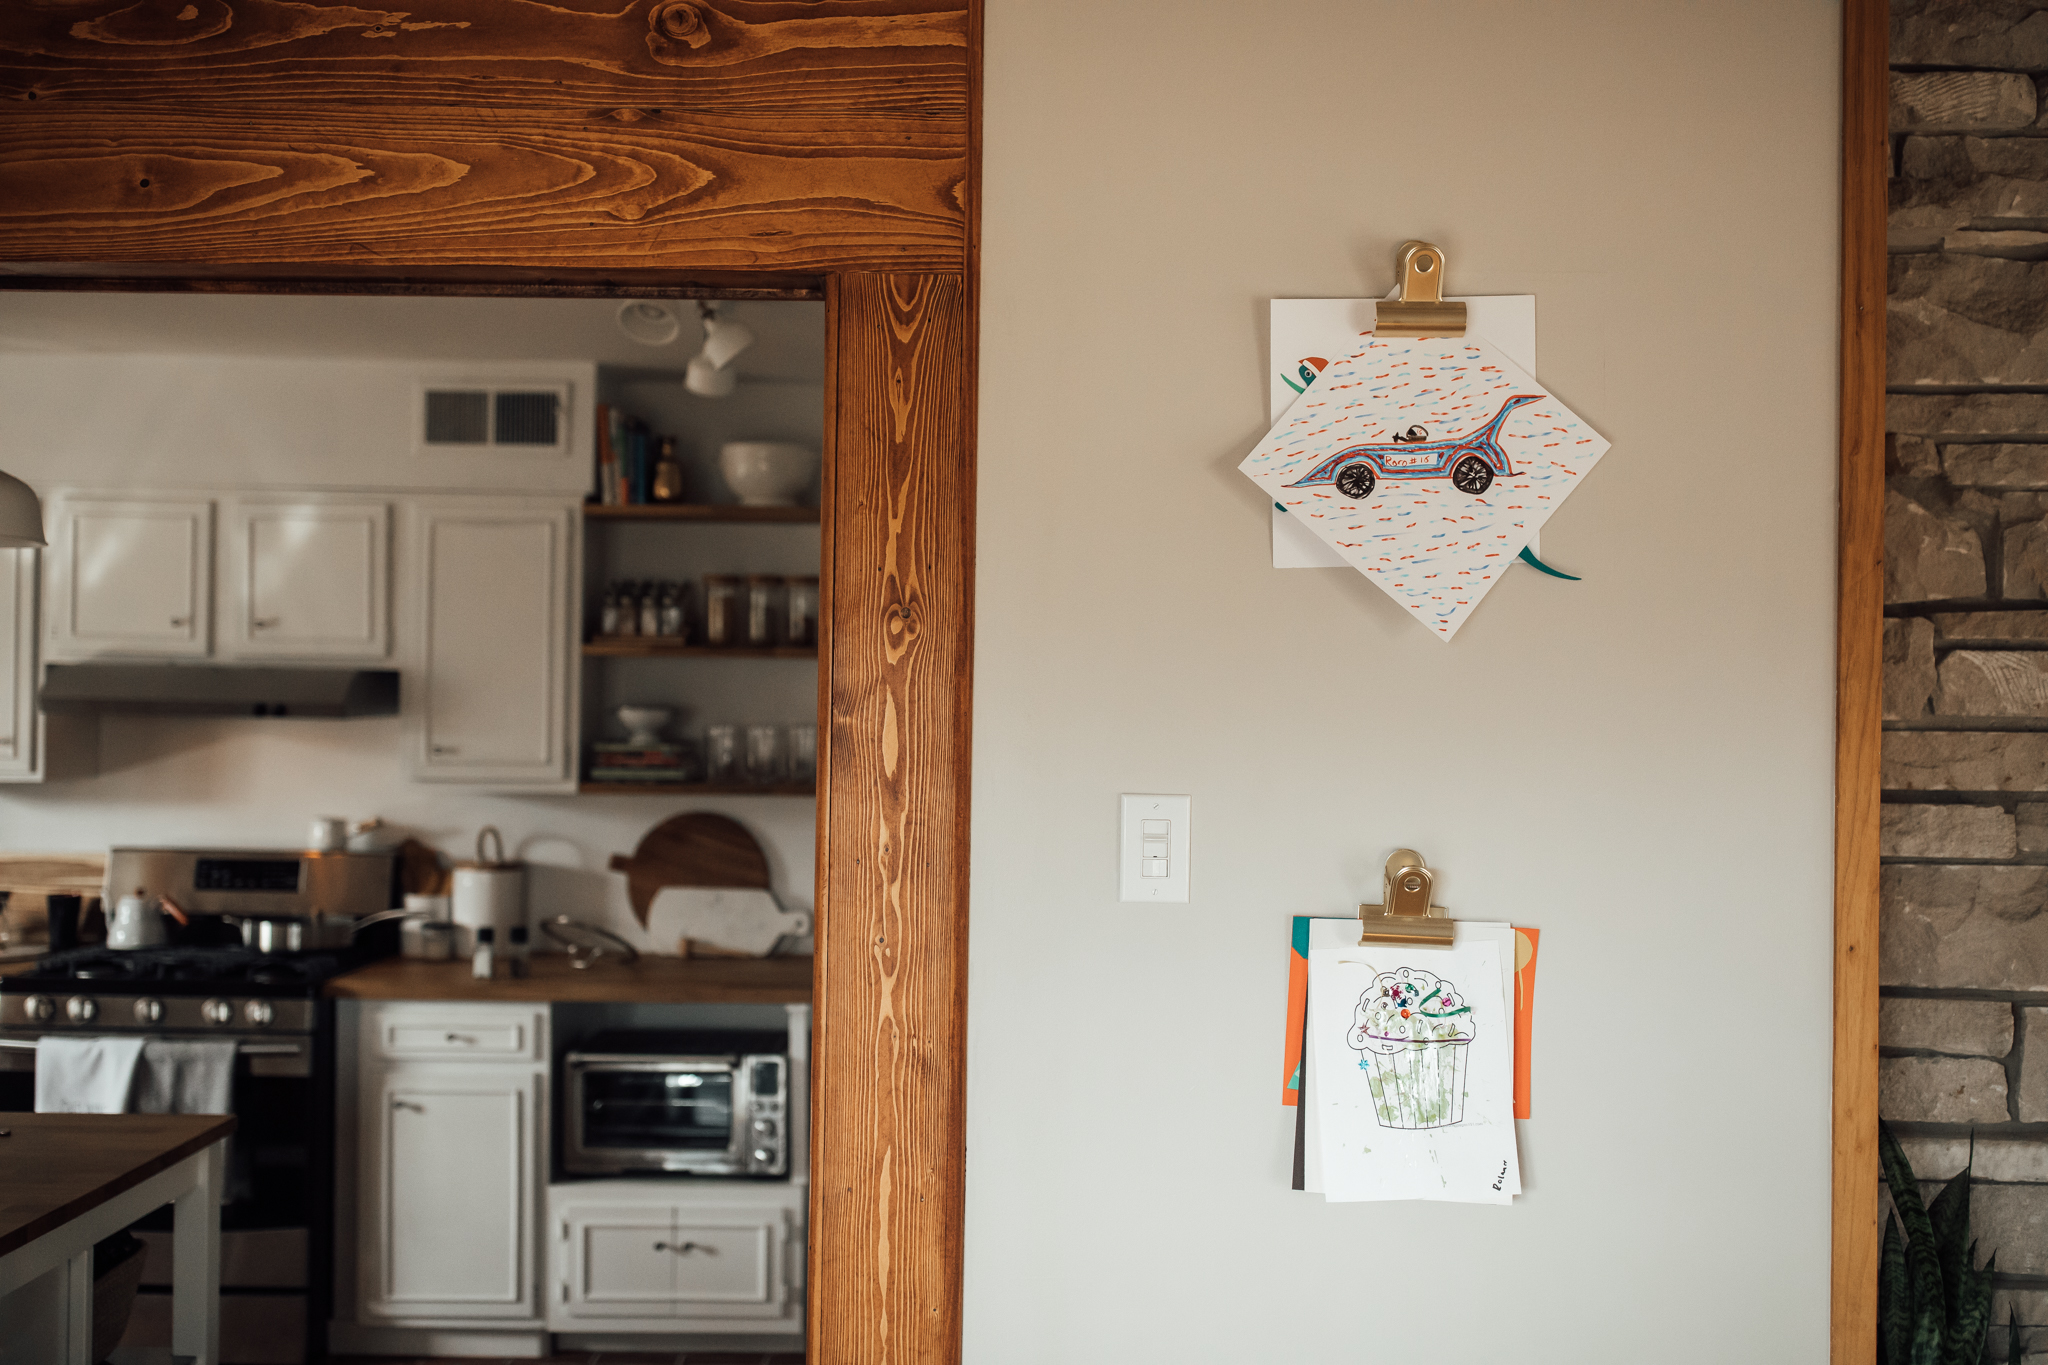 memphis-family-photographer-in-home-thewarmtharoundyou (126 of 140).jpg